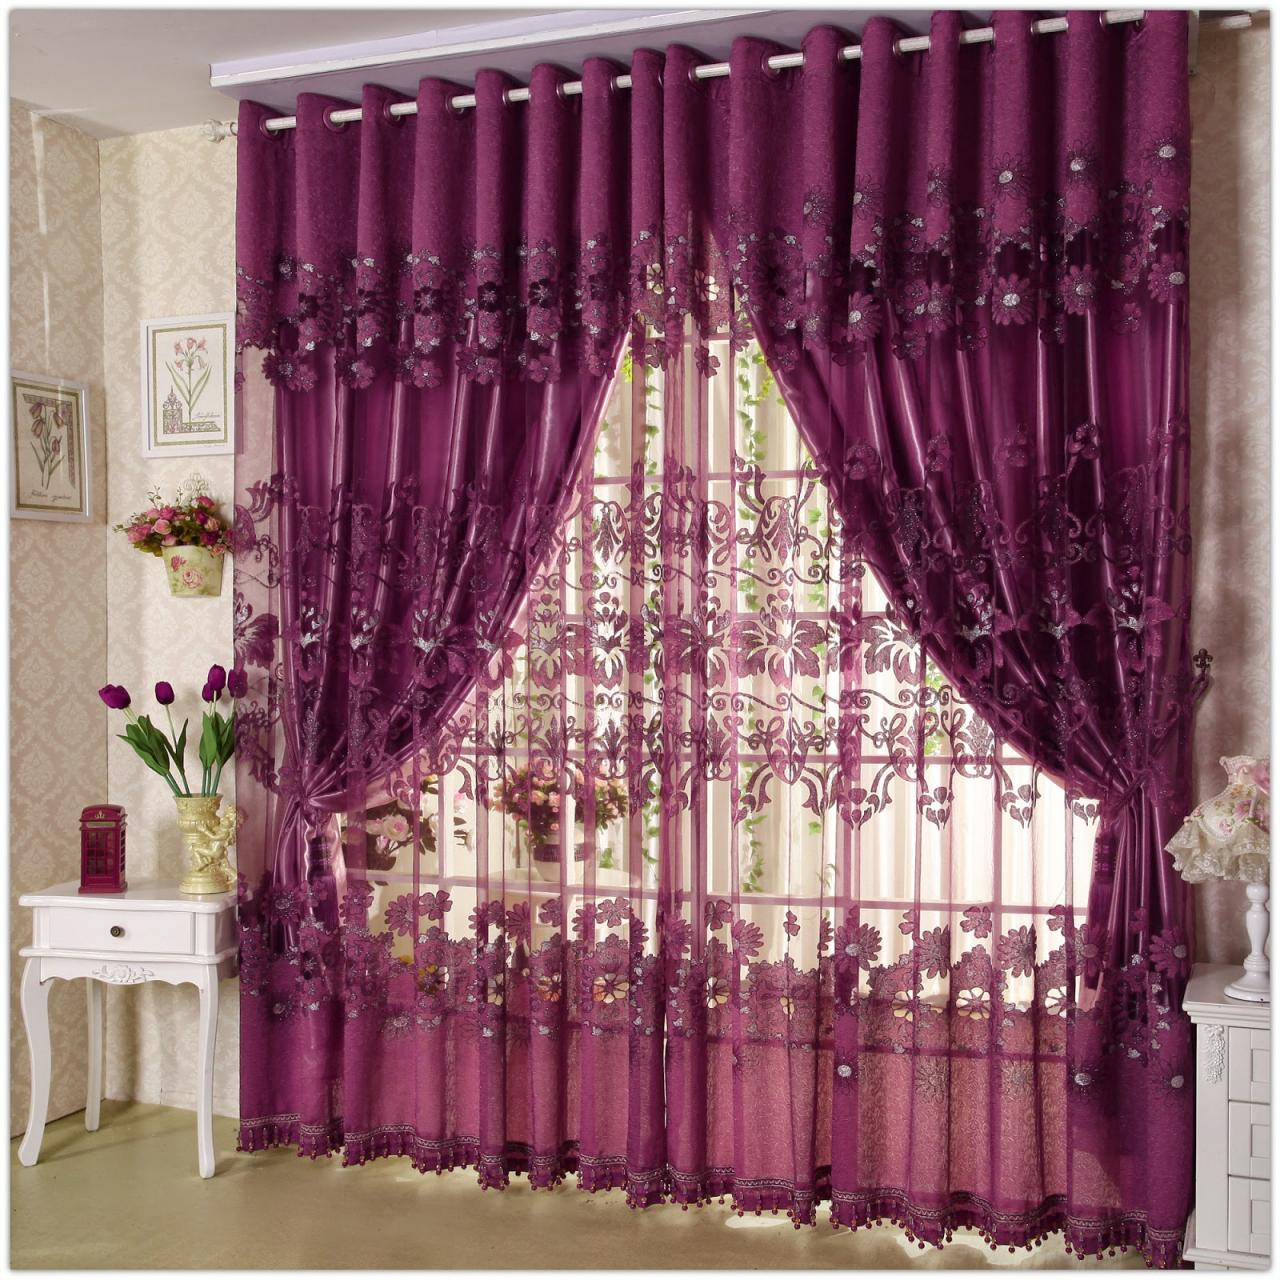 delightful-design-ideas-of-curtain-styles-for-living-room-wiyth-floral-pattern-purple-double-layers-curtains-and-valance-also-combine-with-white-metal-curtain-rod-with-window-drapes-for-living-ro